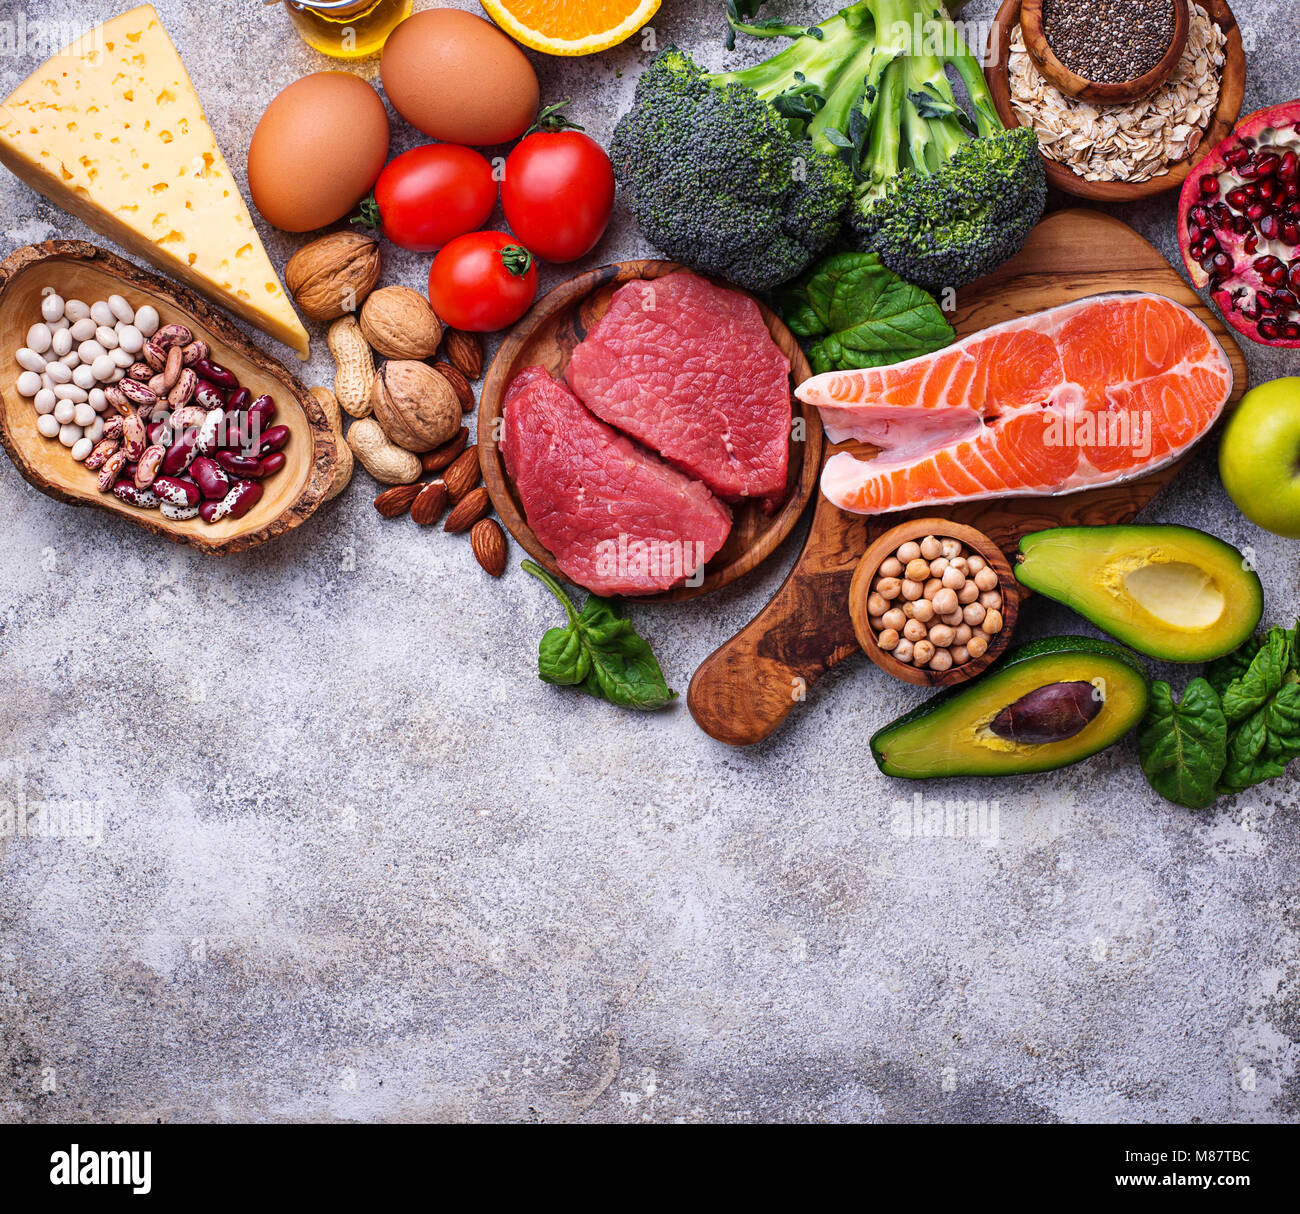 Organic food for healthy nutrition and superfoods  - Stock Image